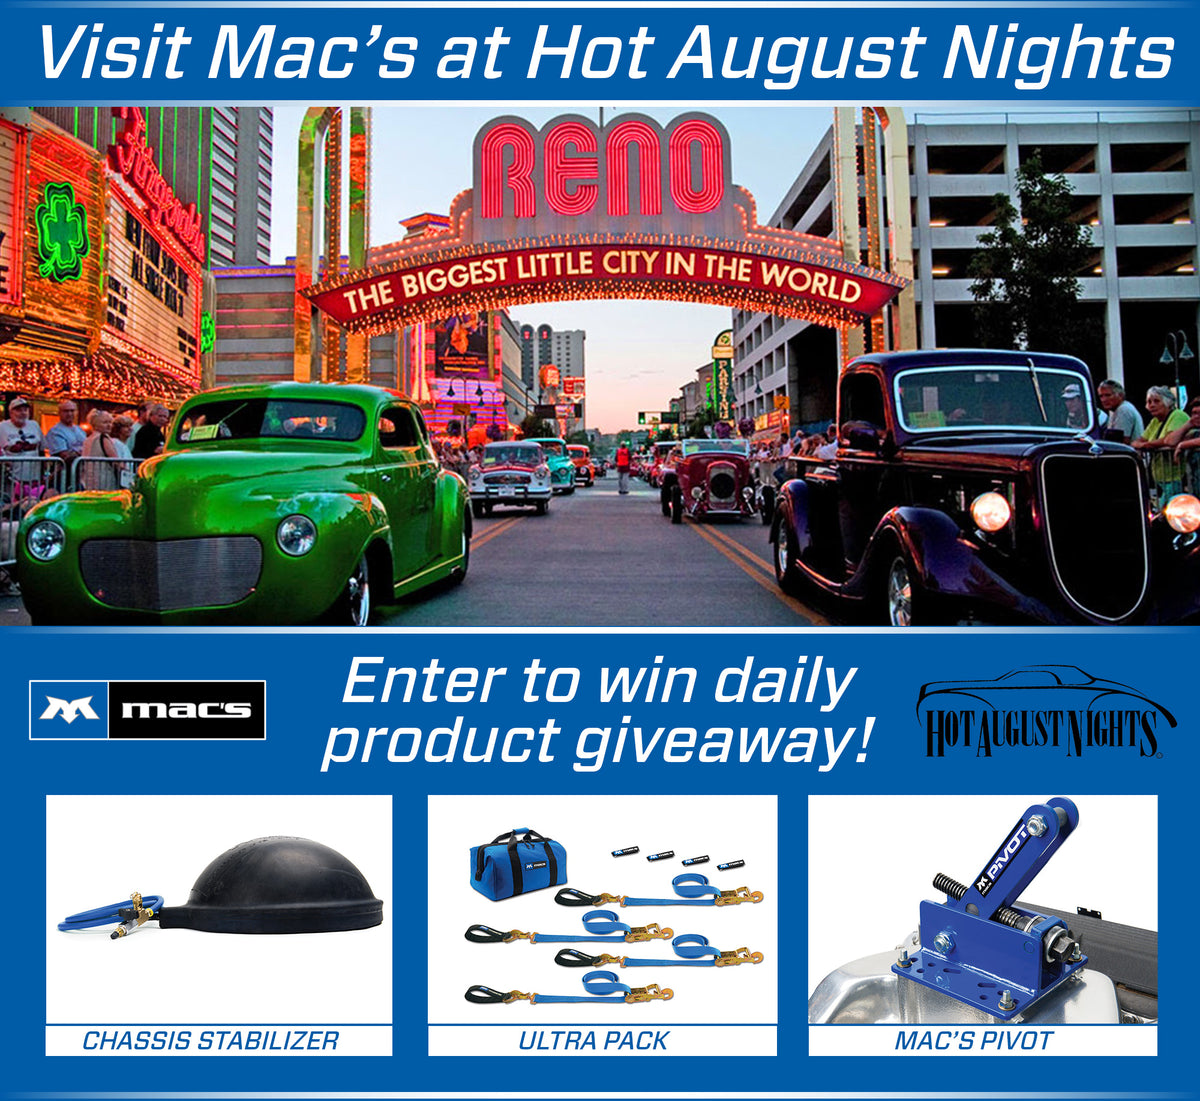 Visit Mac's at Hot August Nights & Enter to Win!